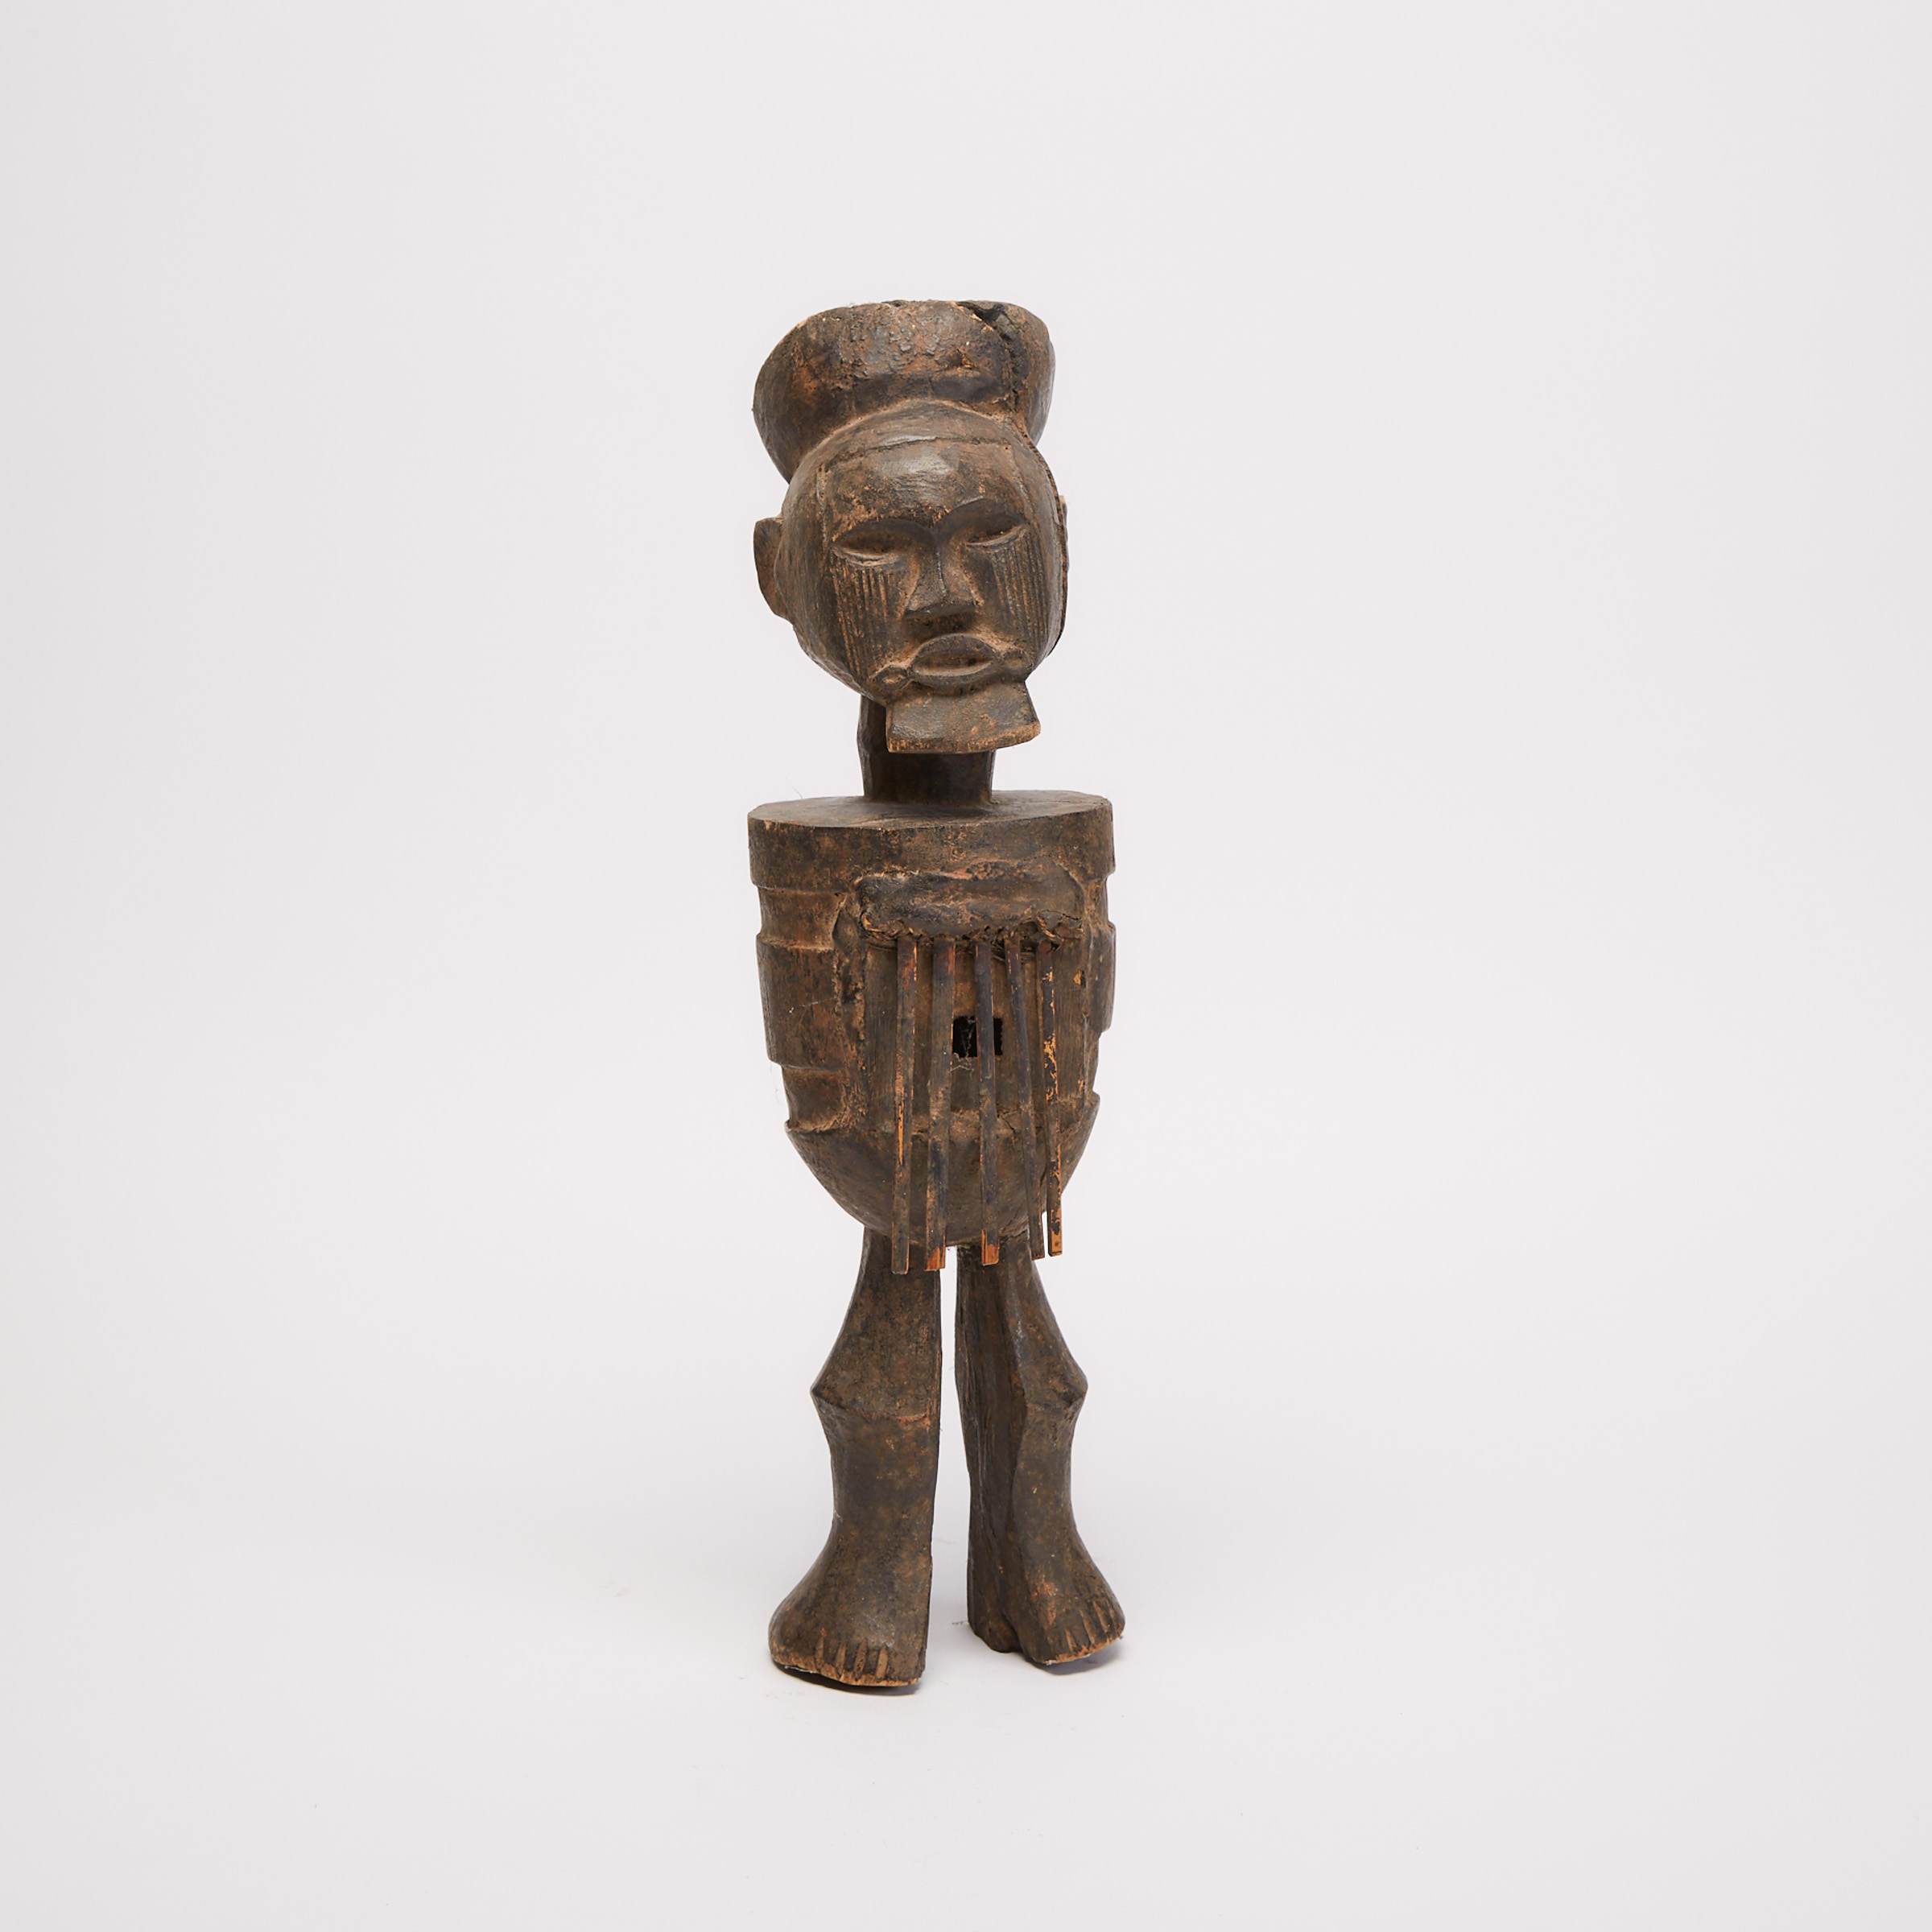 Teke Figural Mbira (finger piano), Democratic Republic of Congo, Central Africa